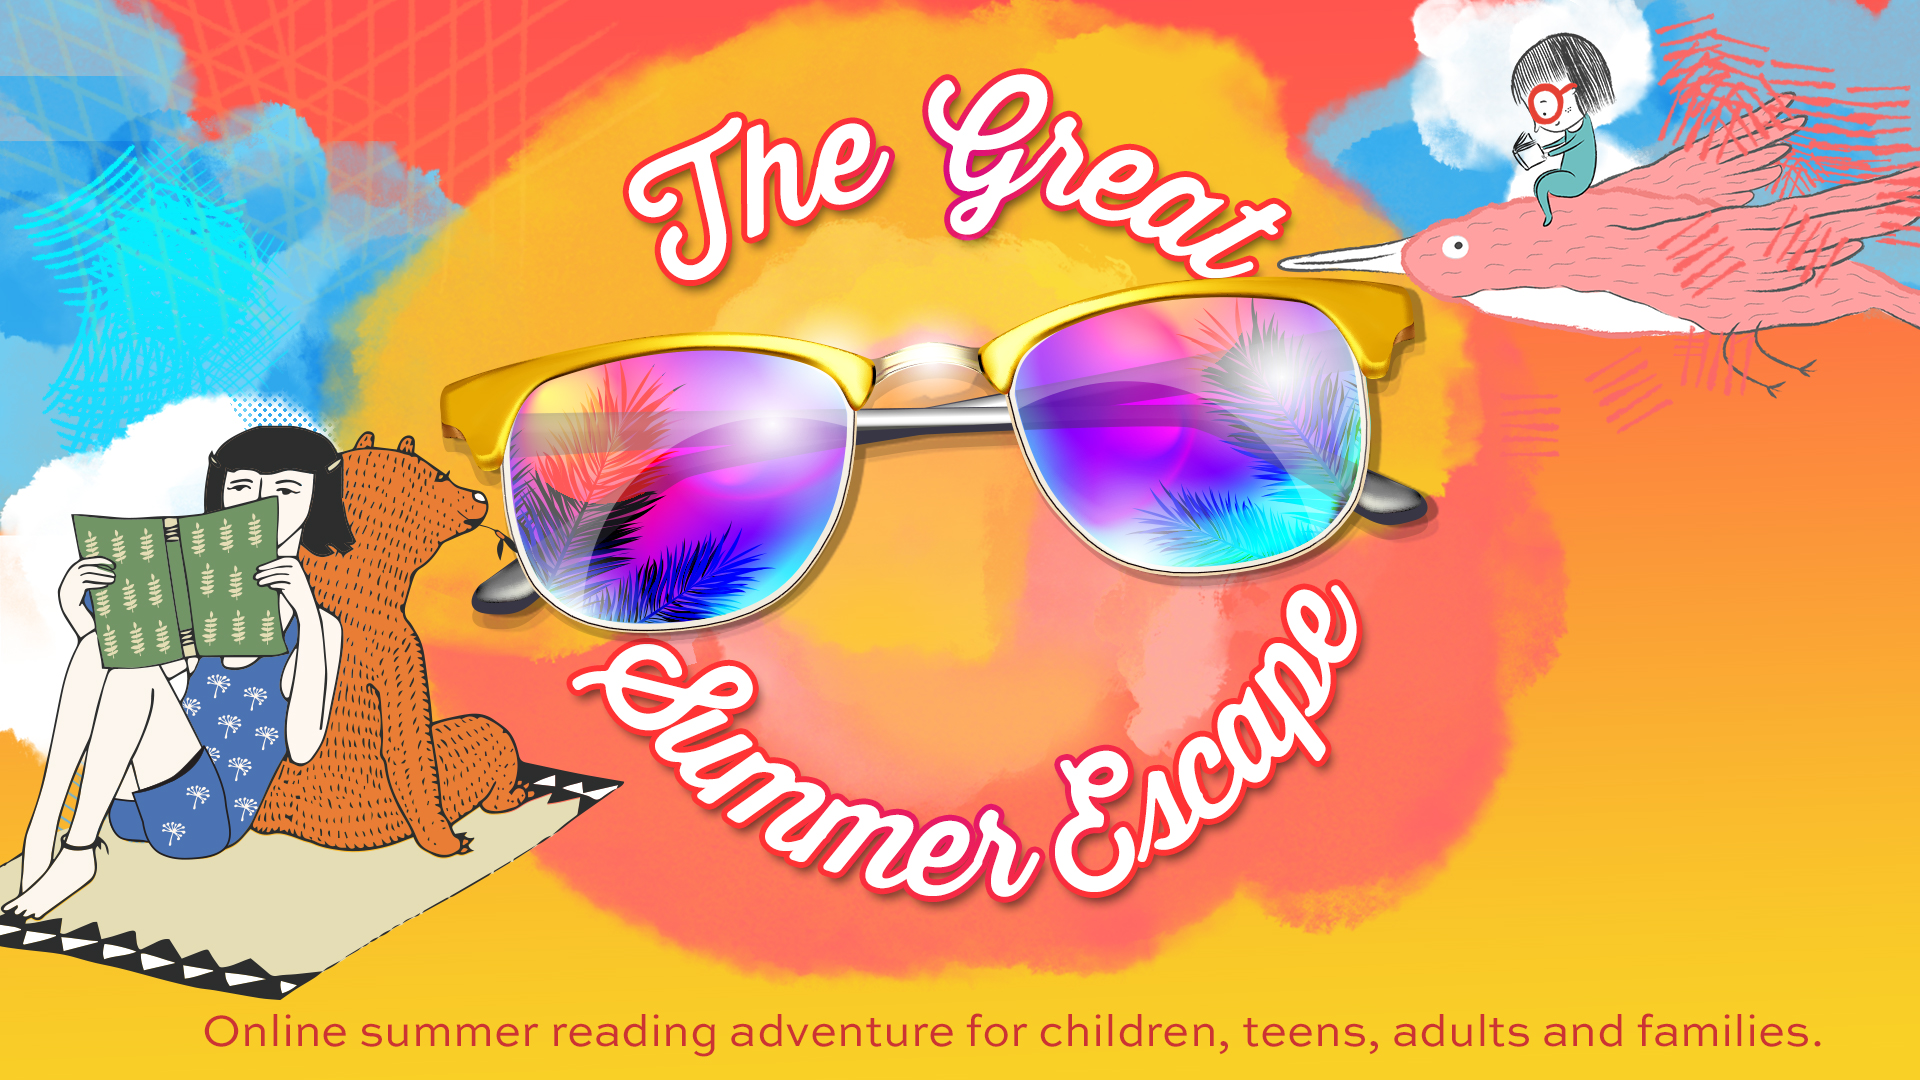 Summer - the great summer reading escape